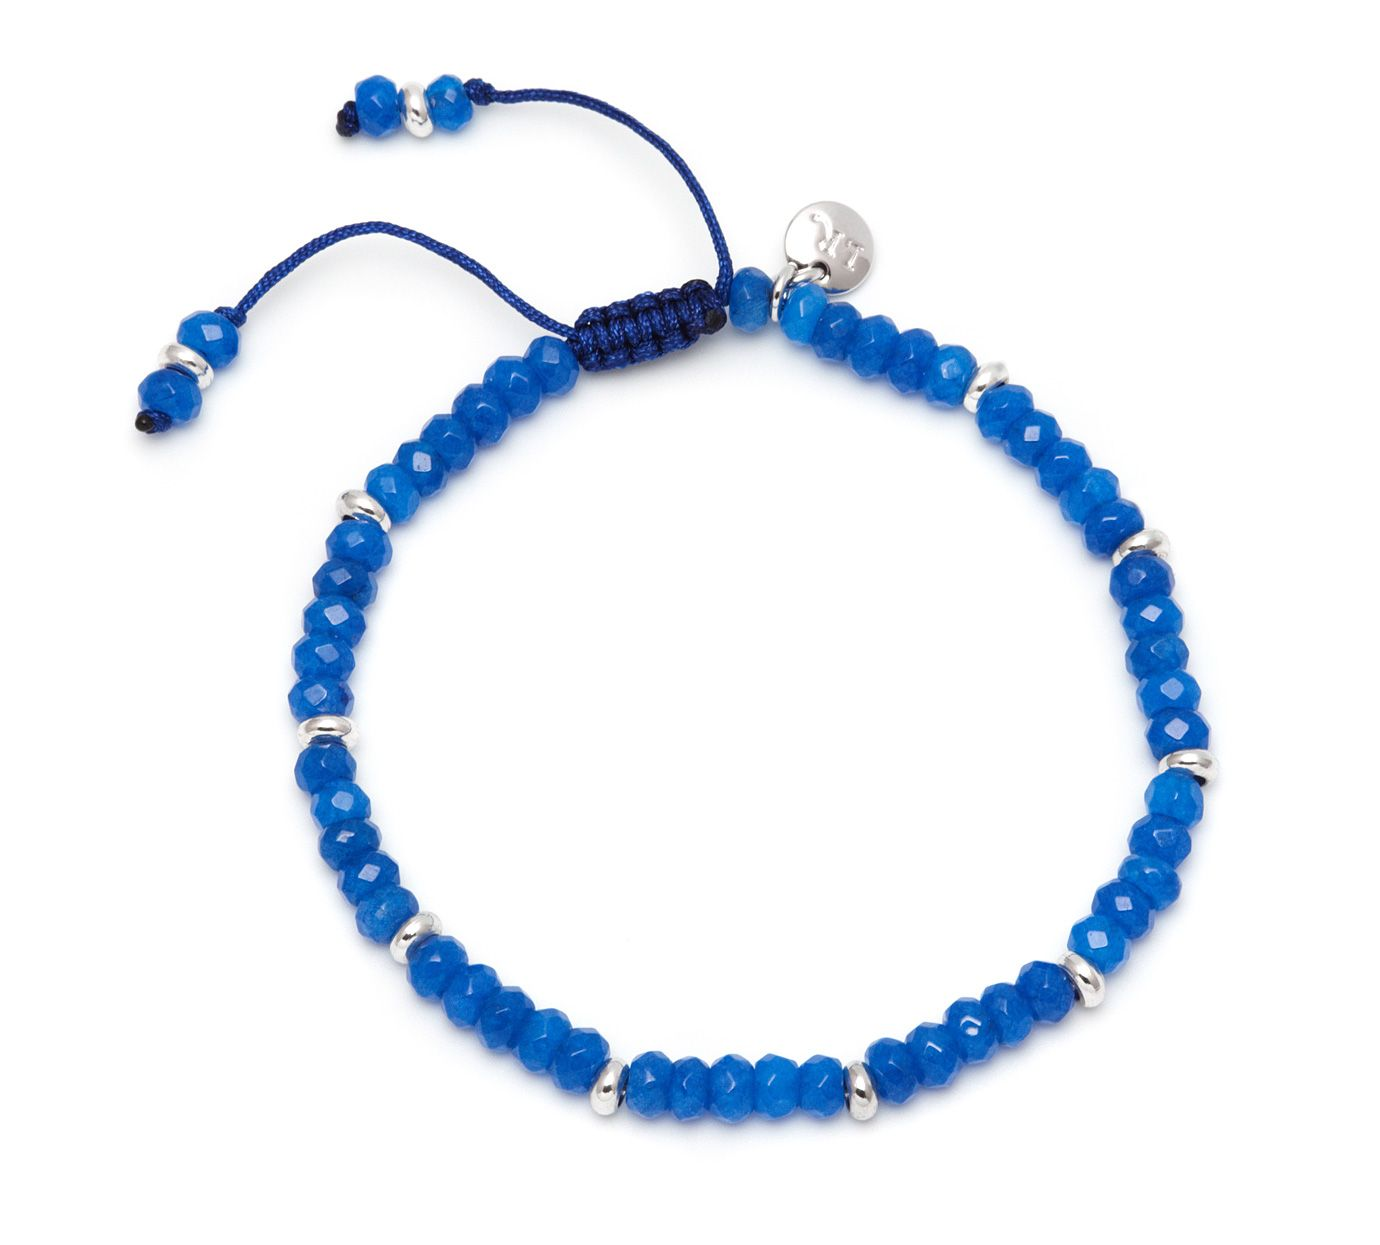 lola rose northwood bracelet deep sky blue quartz